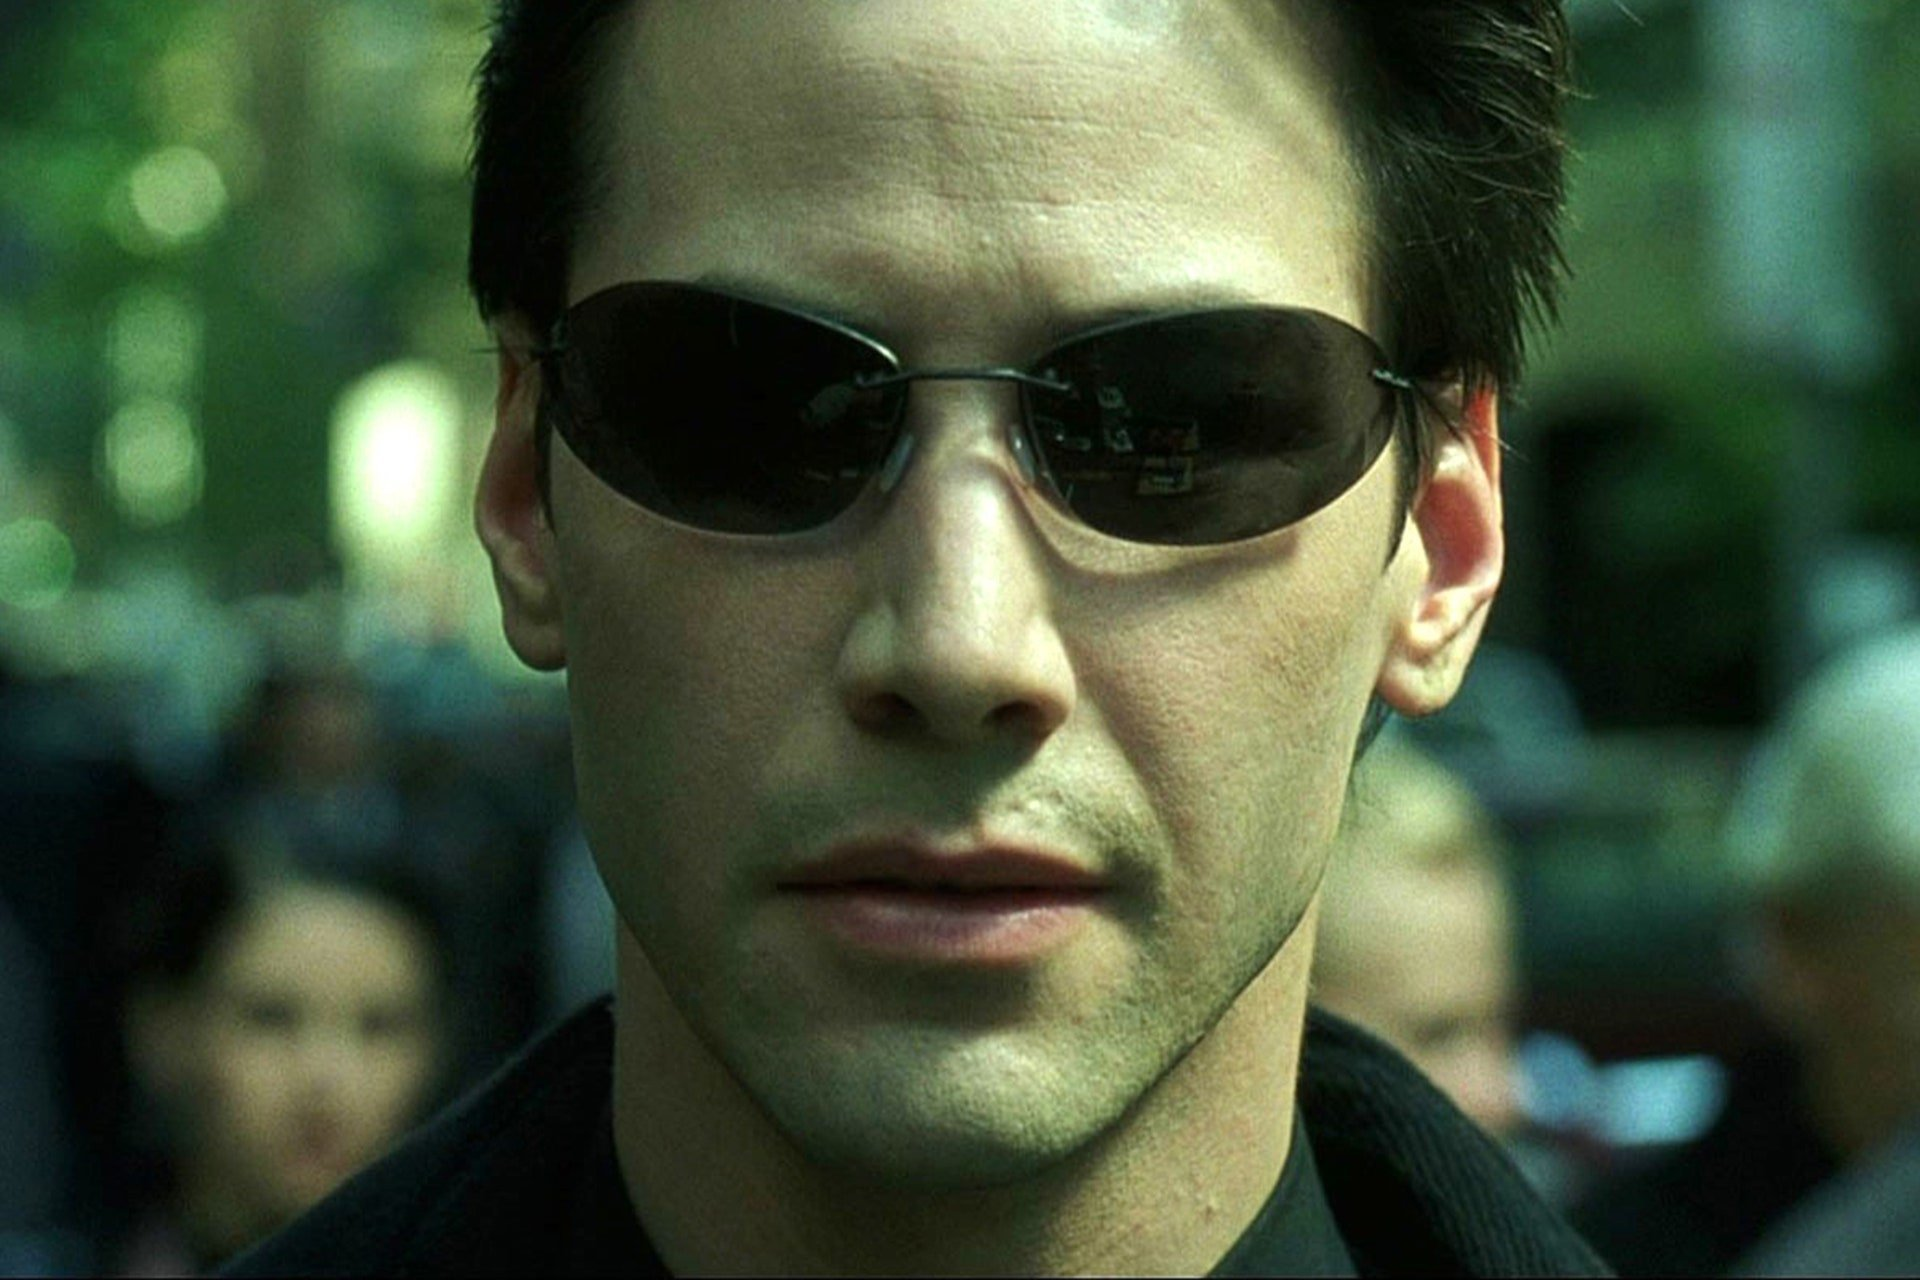 matrix 01 gq 3jun19 b 20 Things You Never Knew About Keanu Reeves